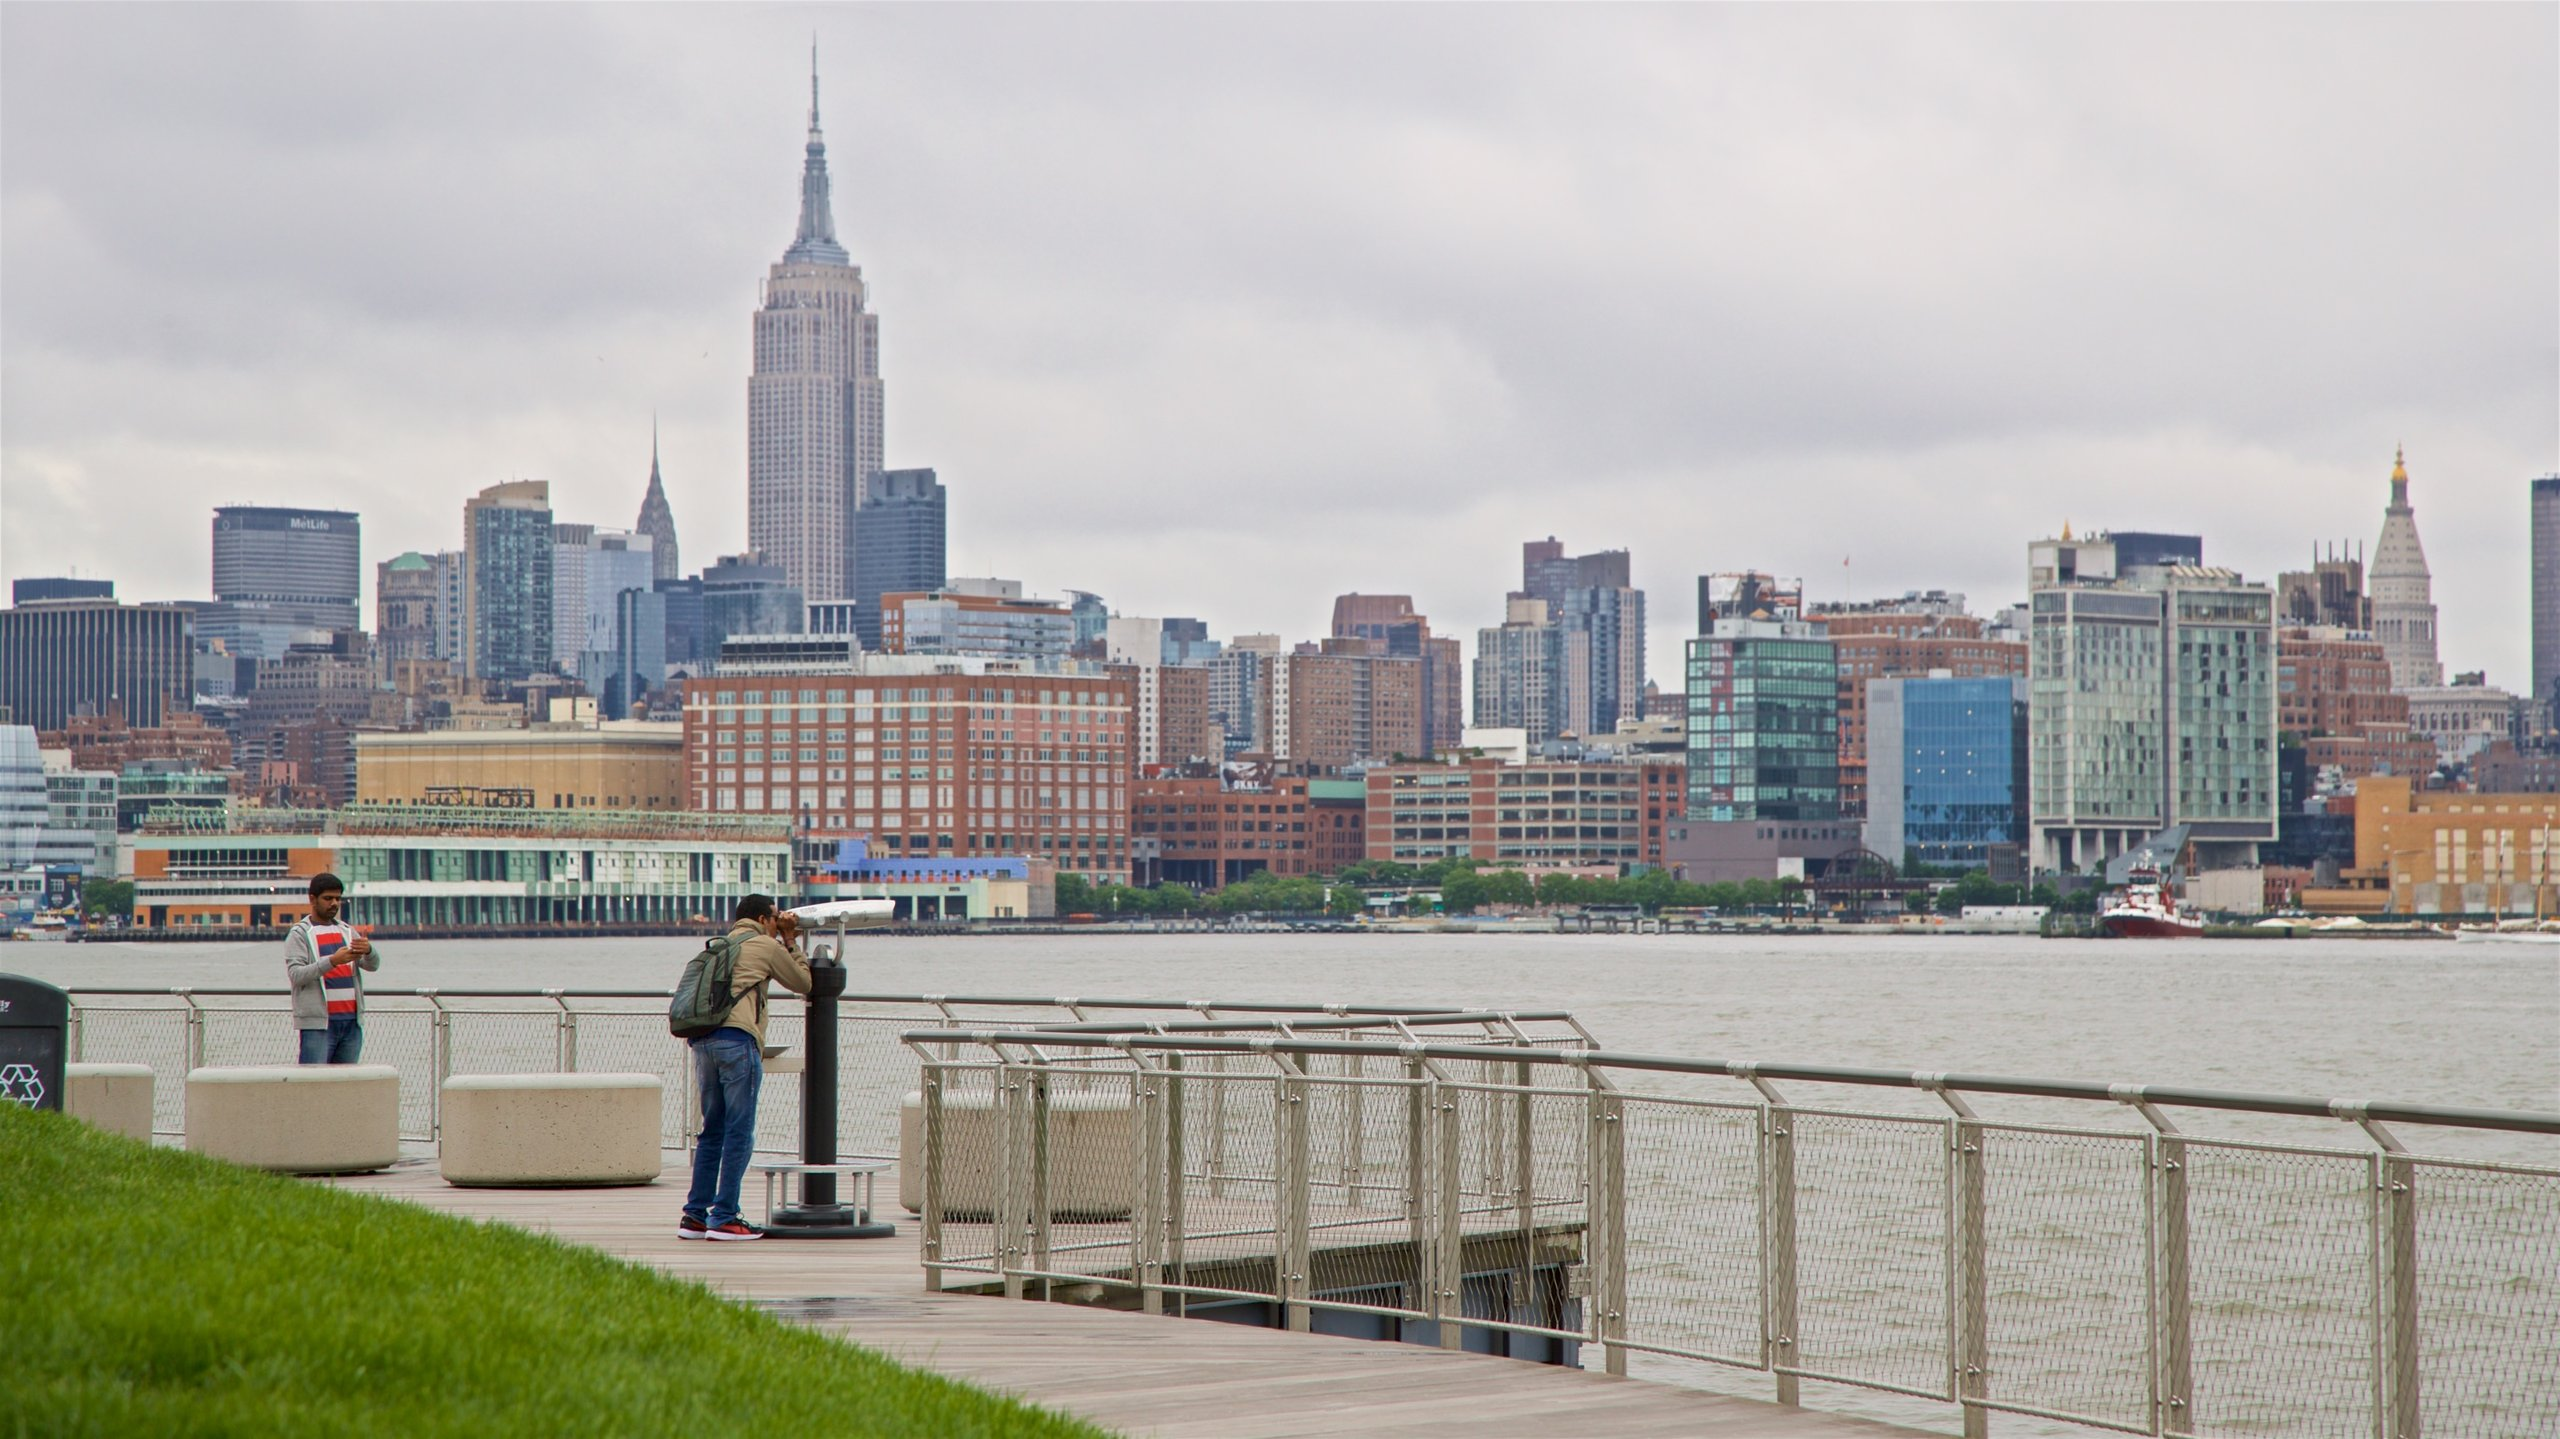 Hoboken, New Jersey, United States of America